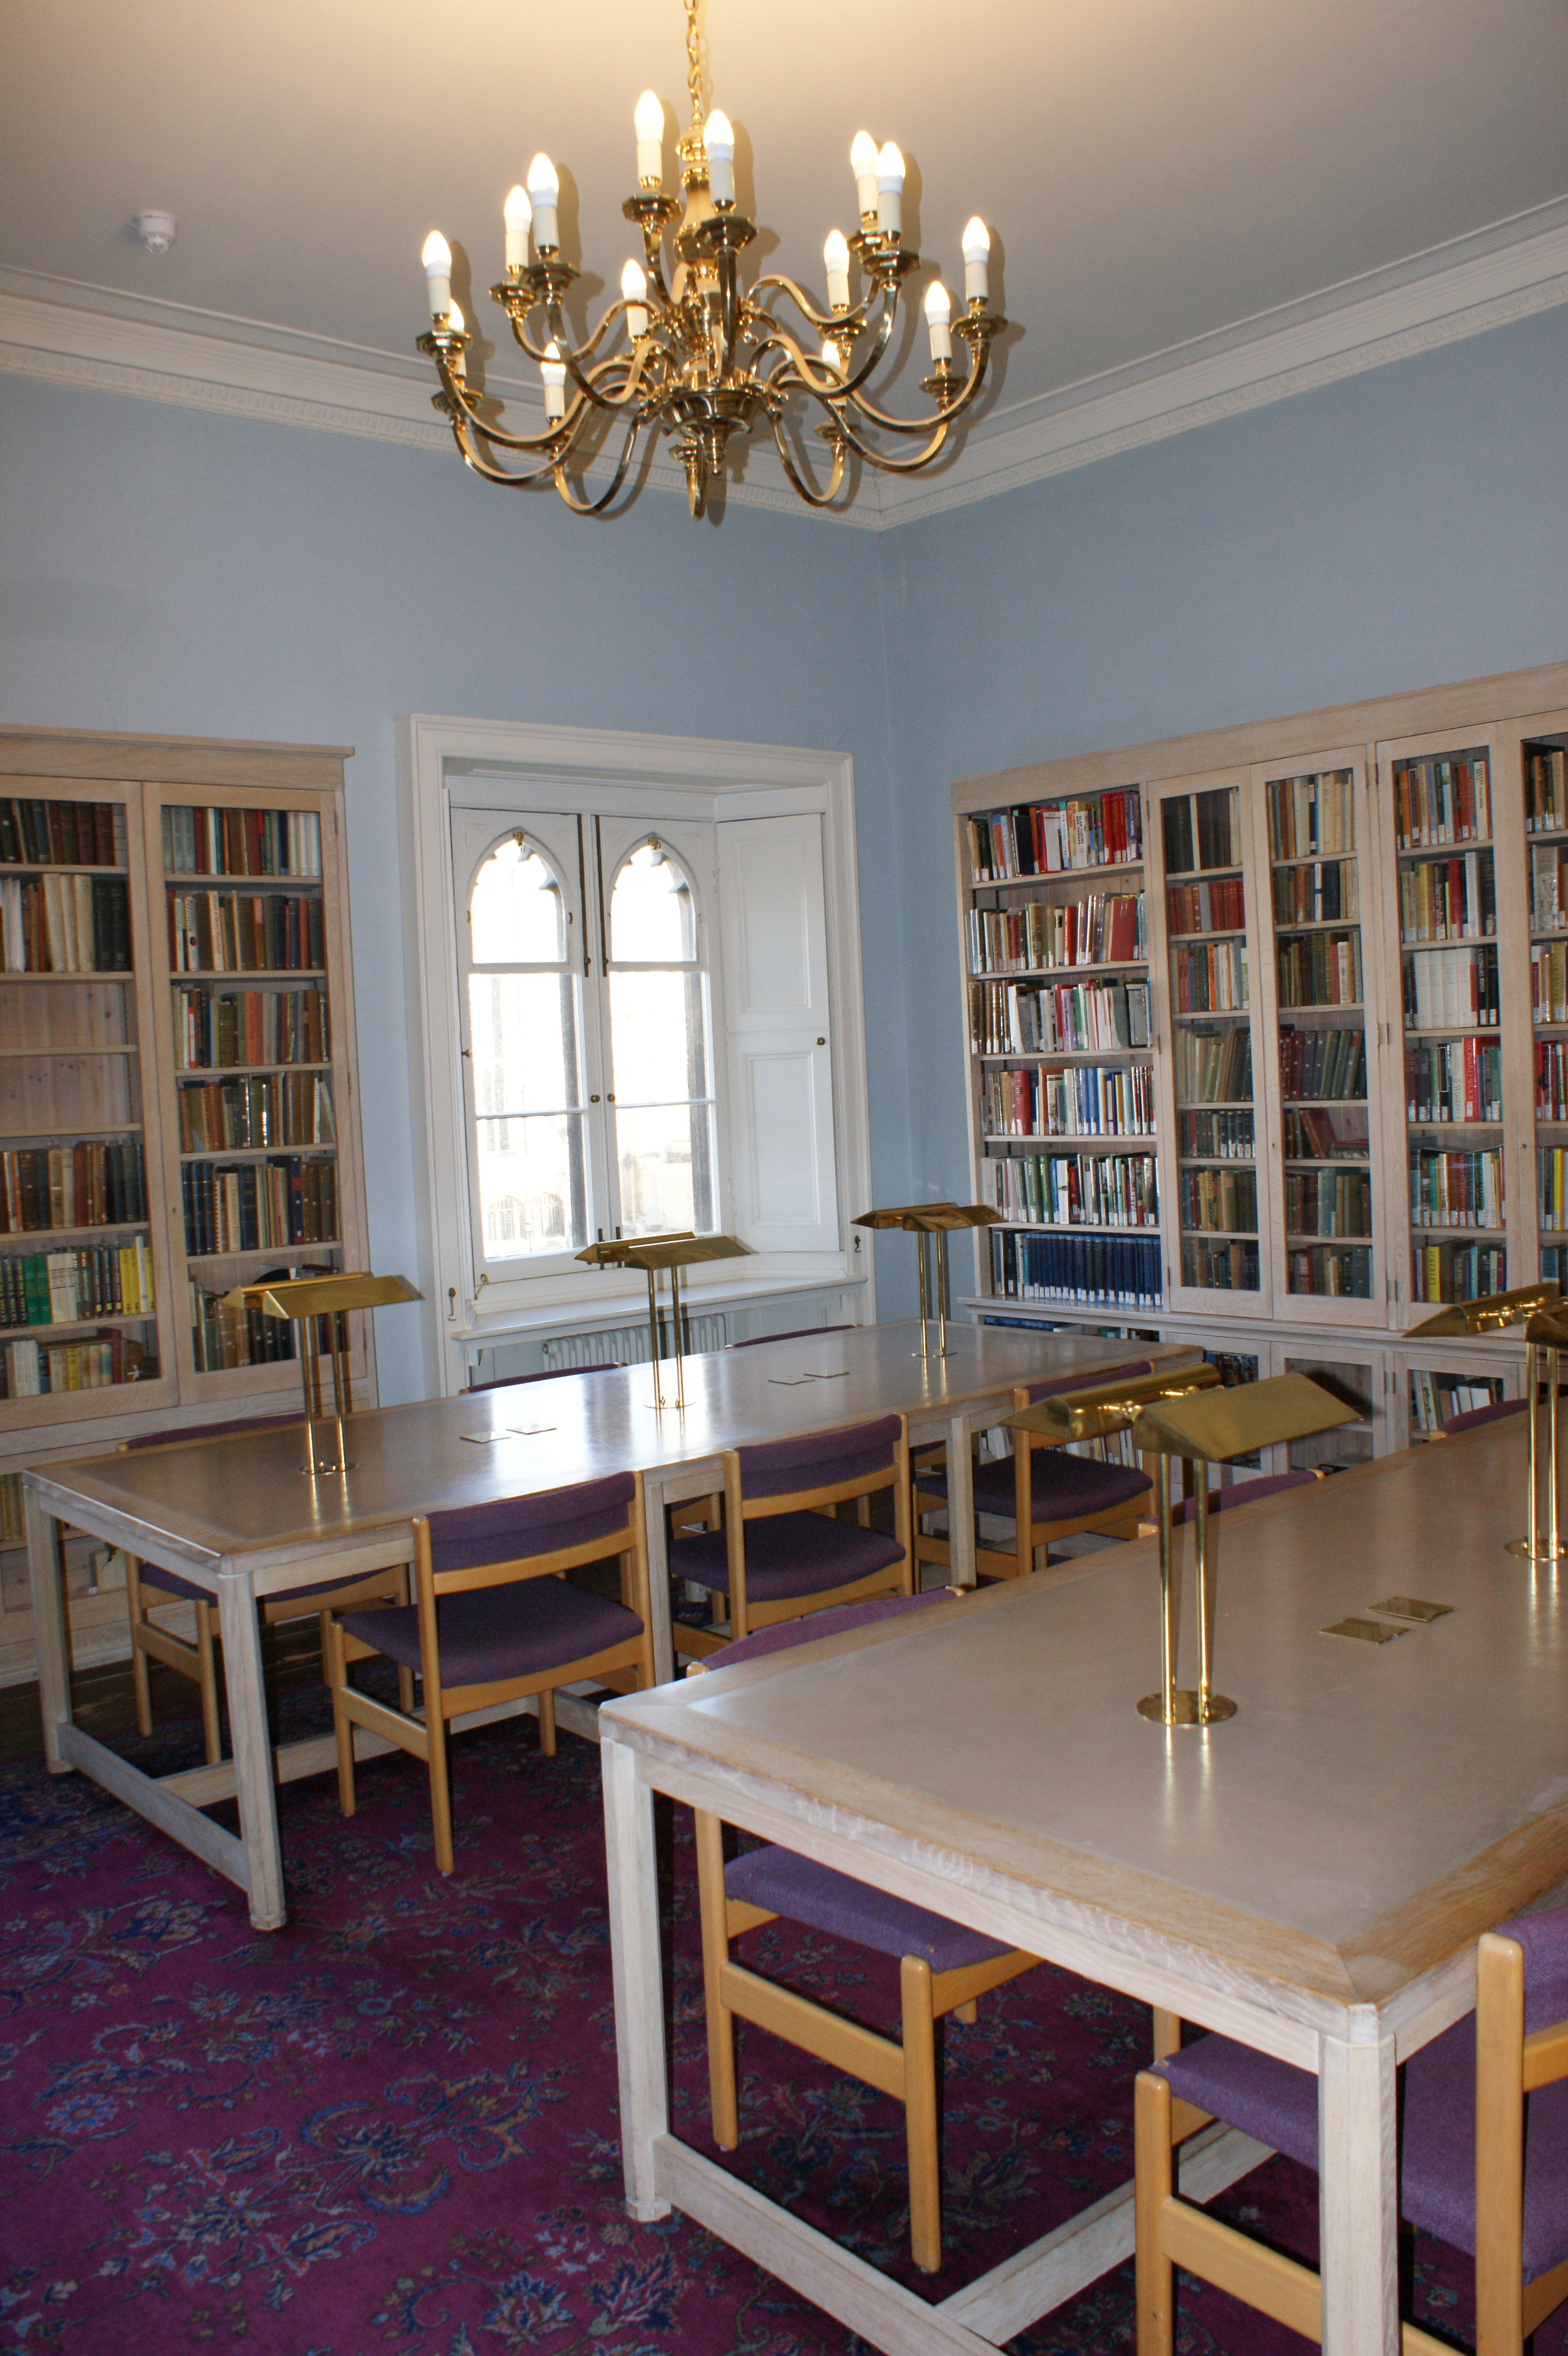 The King's College Archive Centre's reading room.